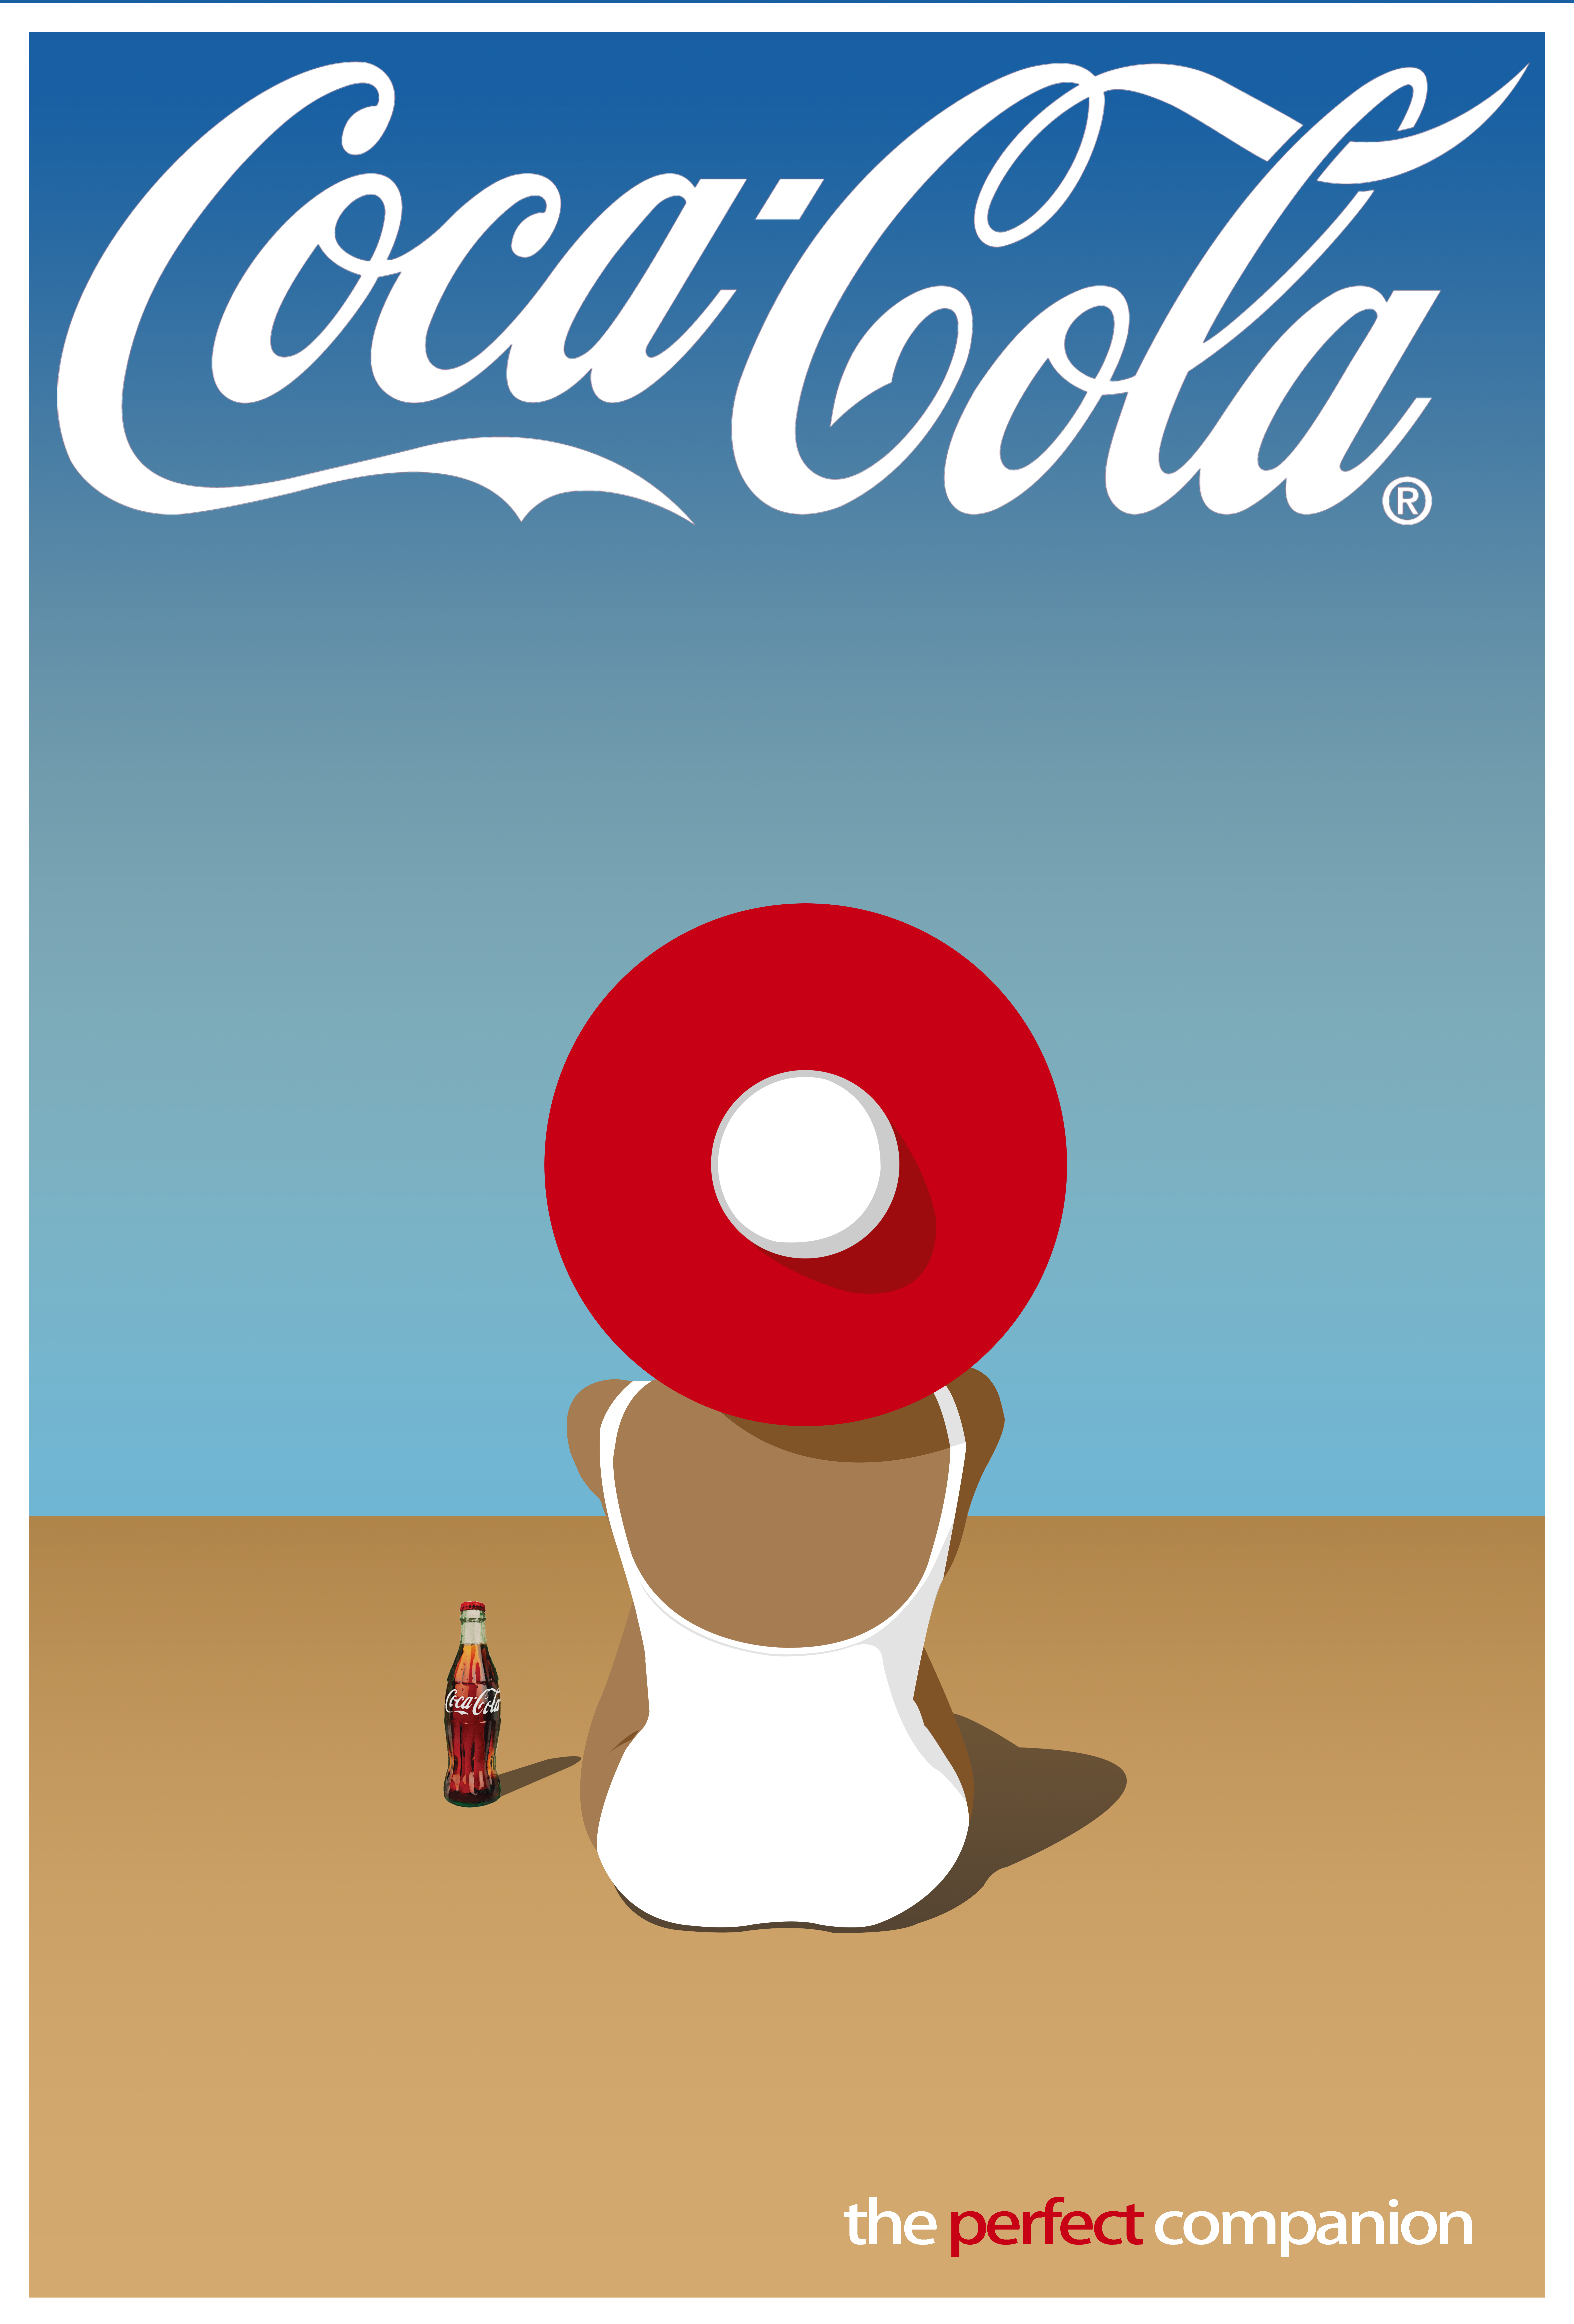 Poster design in indesign - Coca Cola Ad Indesign Photoshop Project Inspired By Vintage Perrier And Orangina Posters